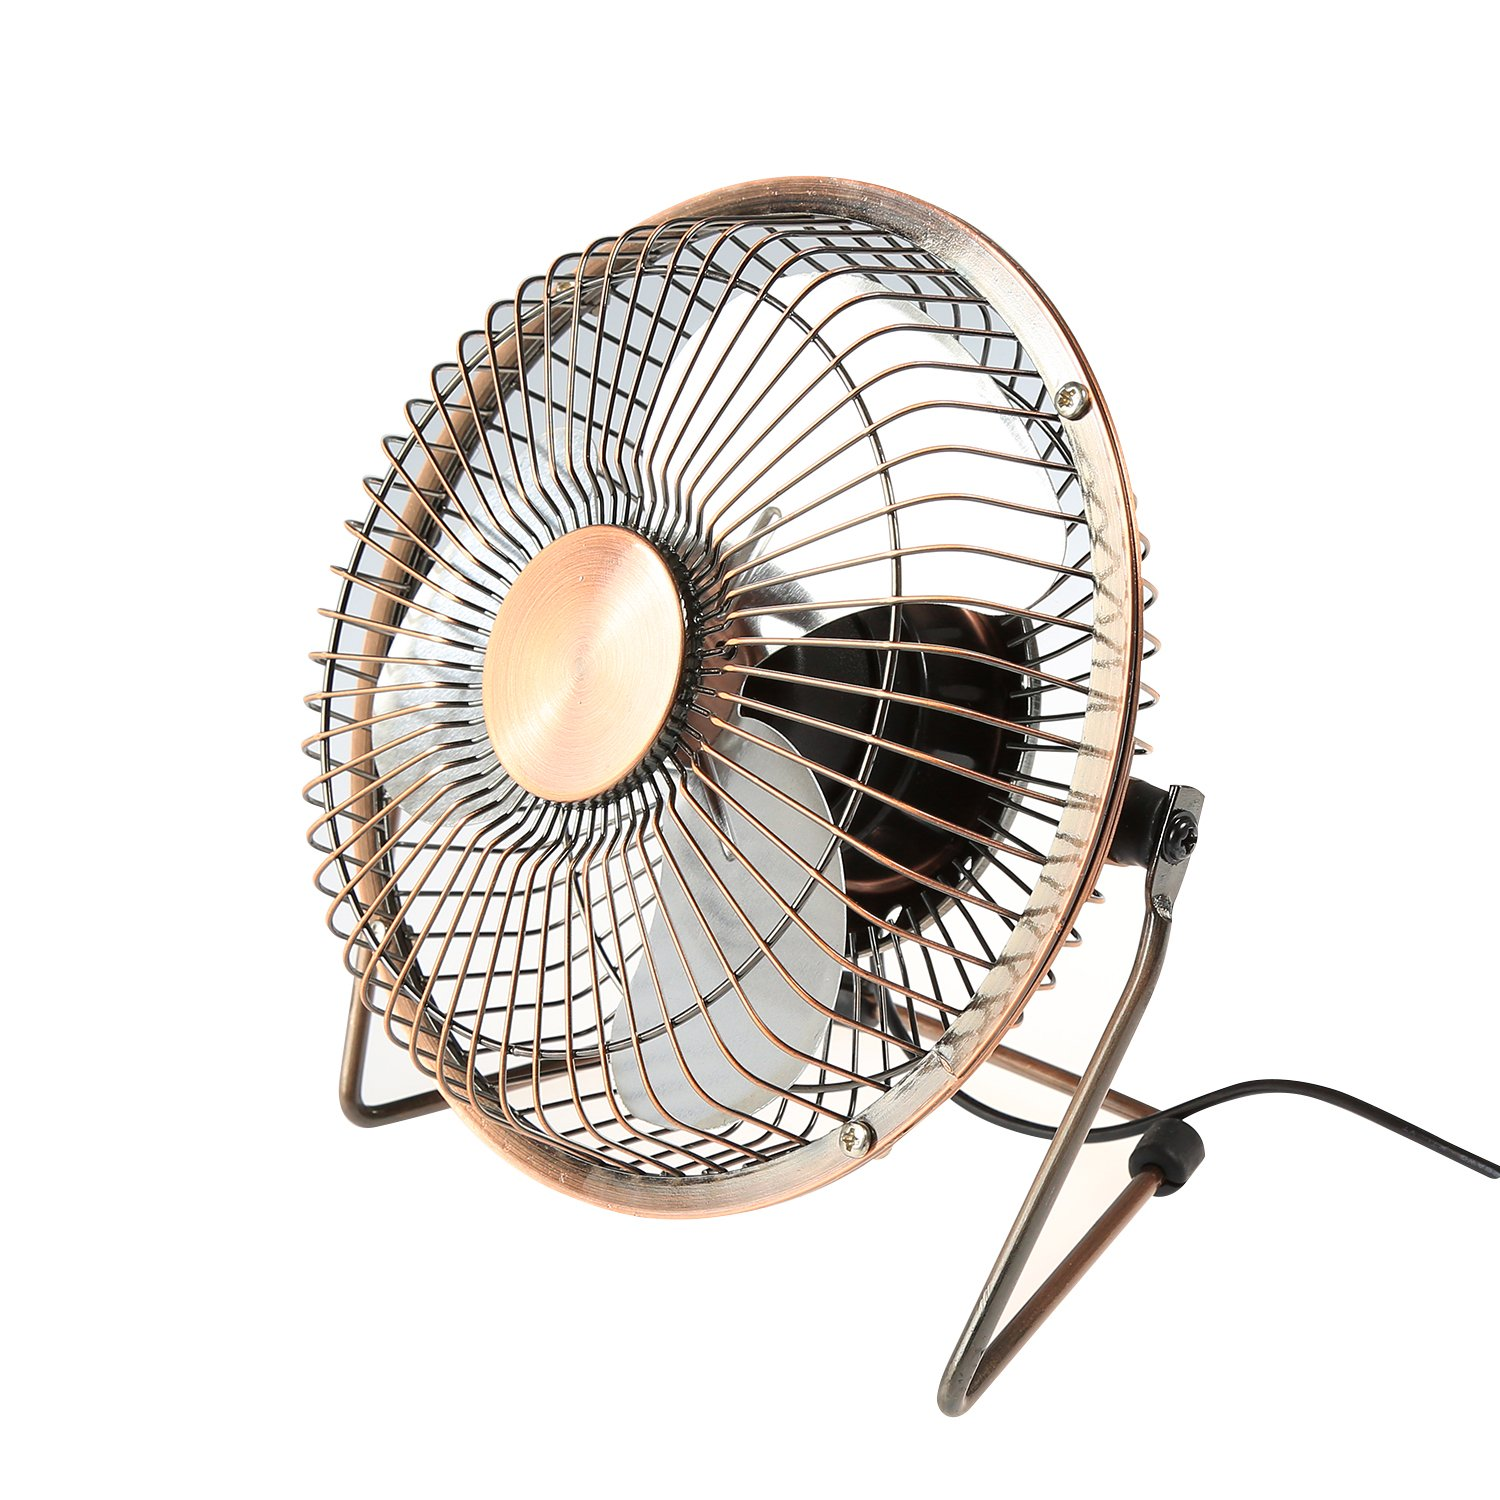 6 Inch LEADSTAR USB Mini Fan 6 Inches Portable Desk Table Cooling Fan USB Powered by PC MacBook Laptop Bronze